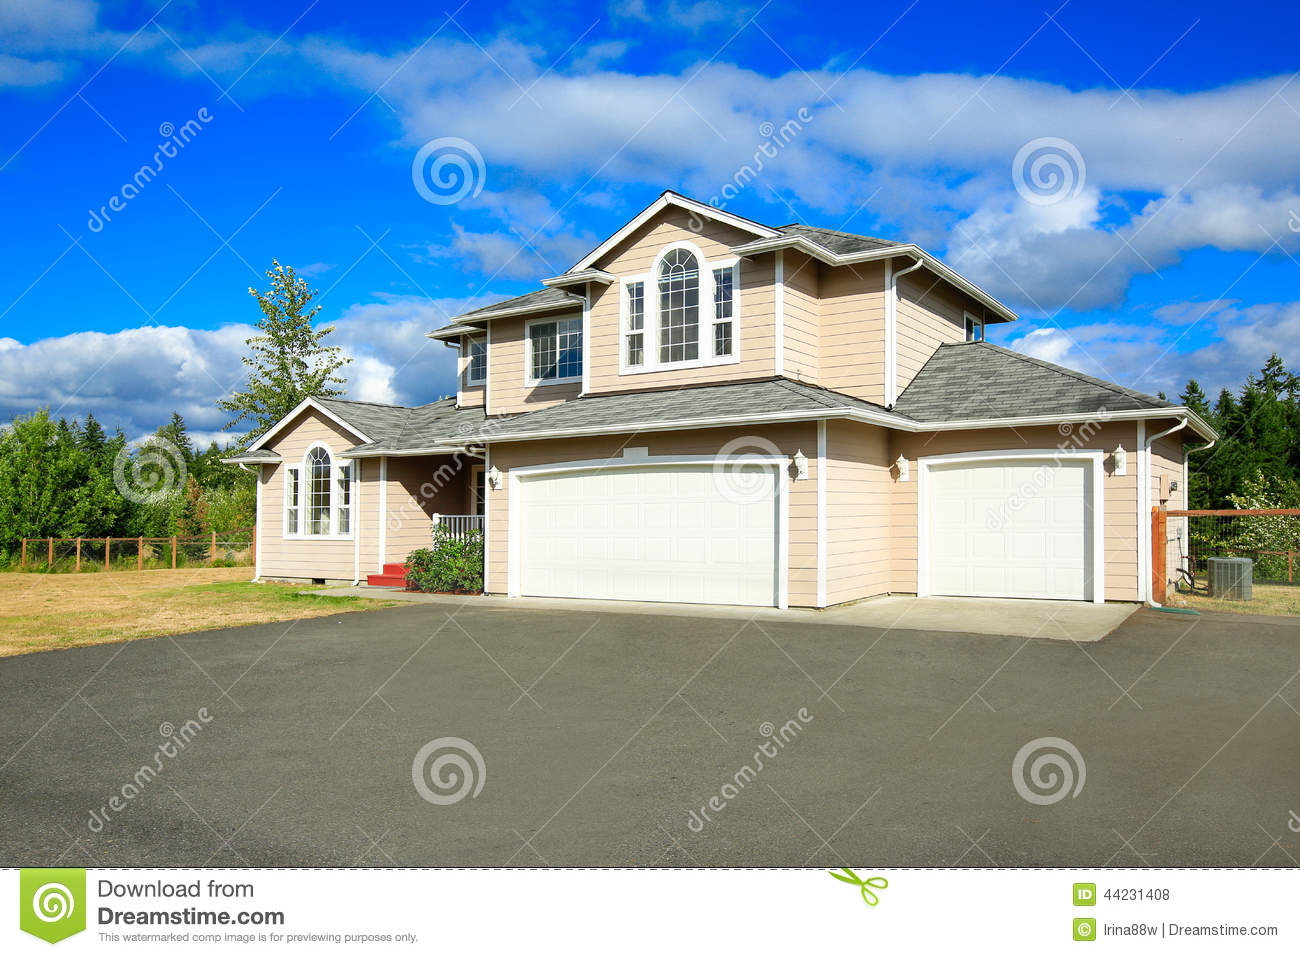 House Exterior With Two Car Garage And Driveway Stock